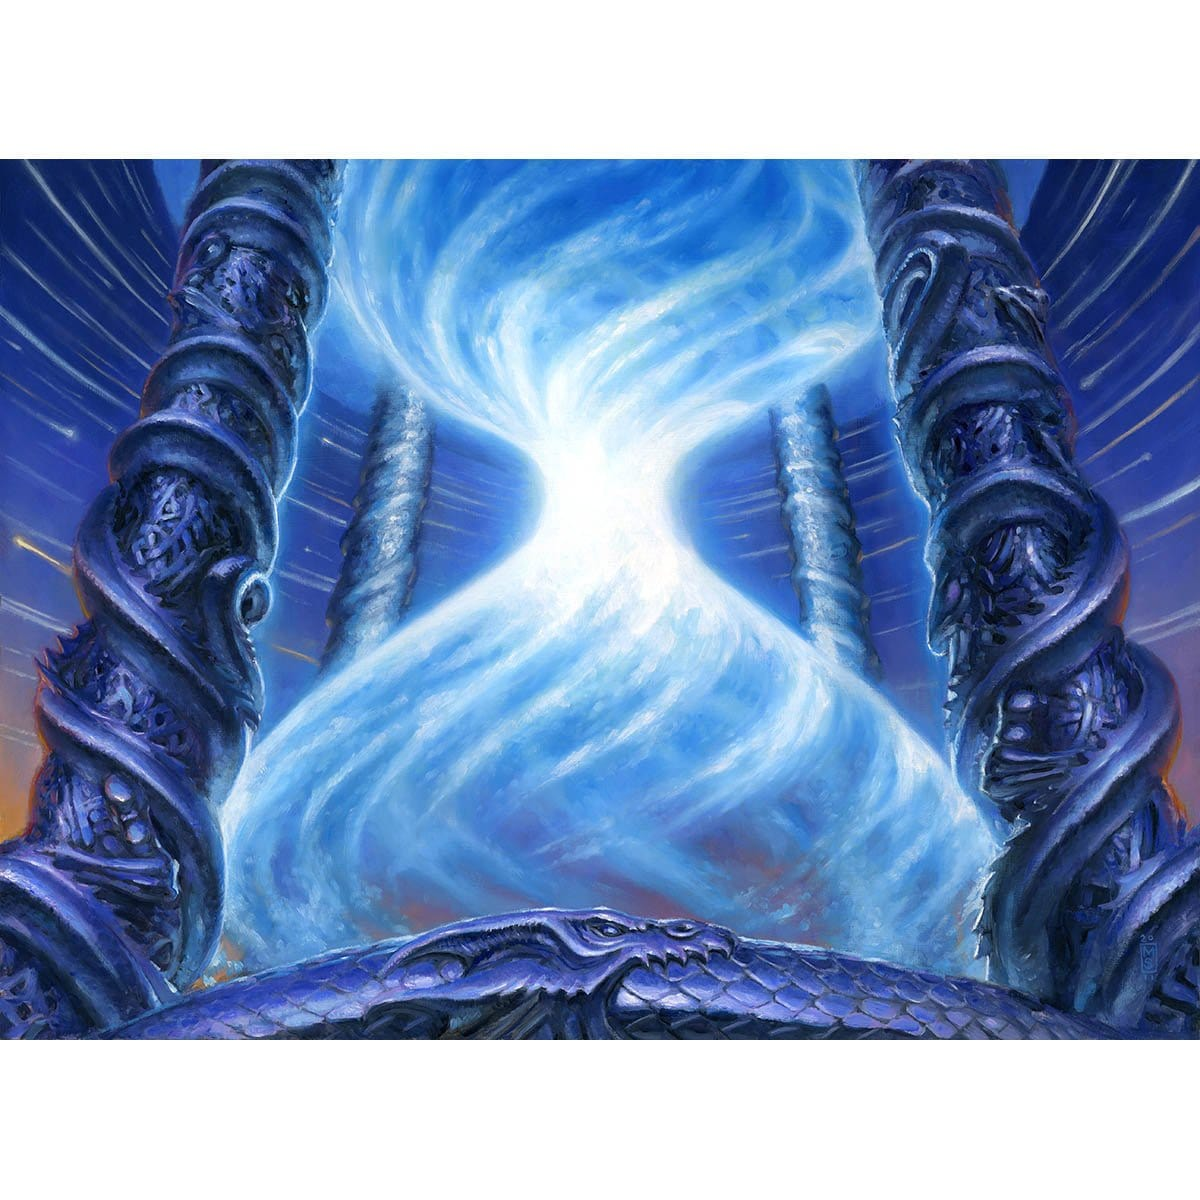 Timetwister Print - Print - Original Magic Art - Accessories for Magic the Gathering and other card games